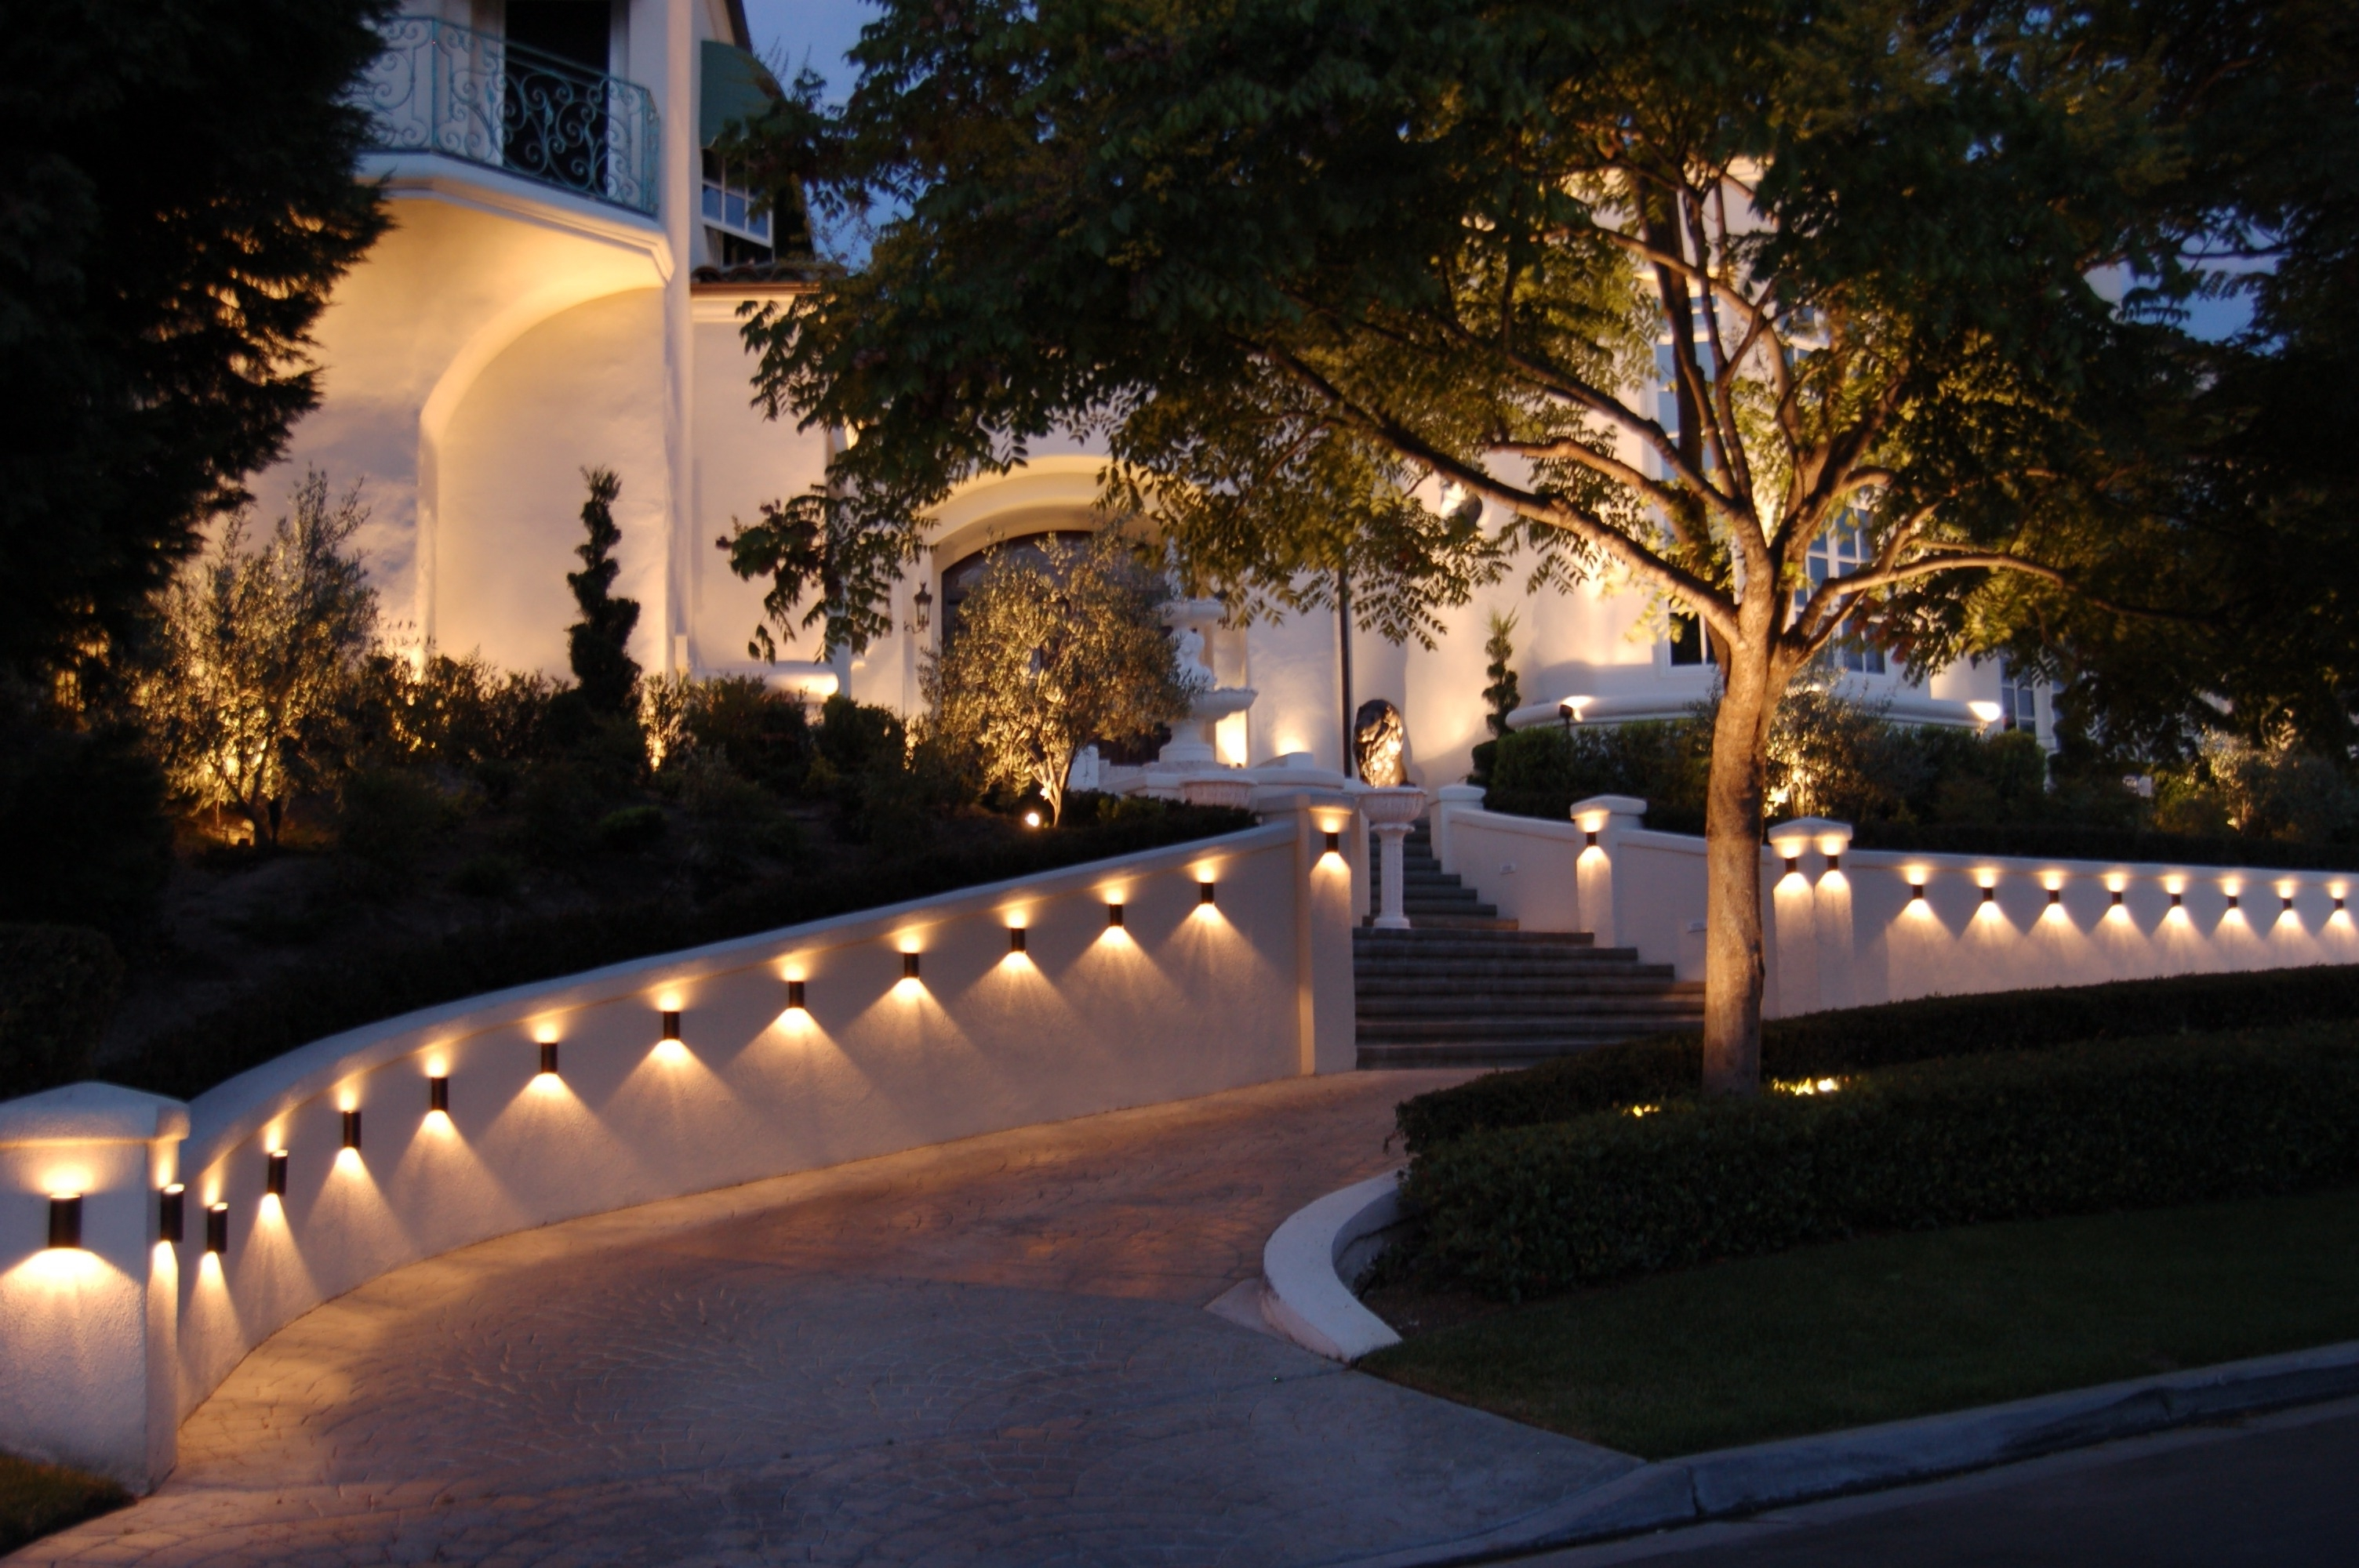 Current Outdoor Ceiling Lights Led Ground In Lighting Driveway Fixtures Deer Regarding Outdoor Driveway Lanterns (Gallery 1 of 20)